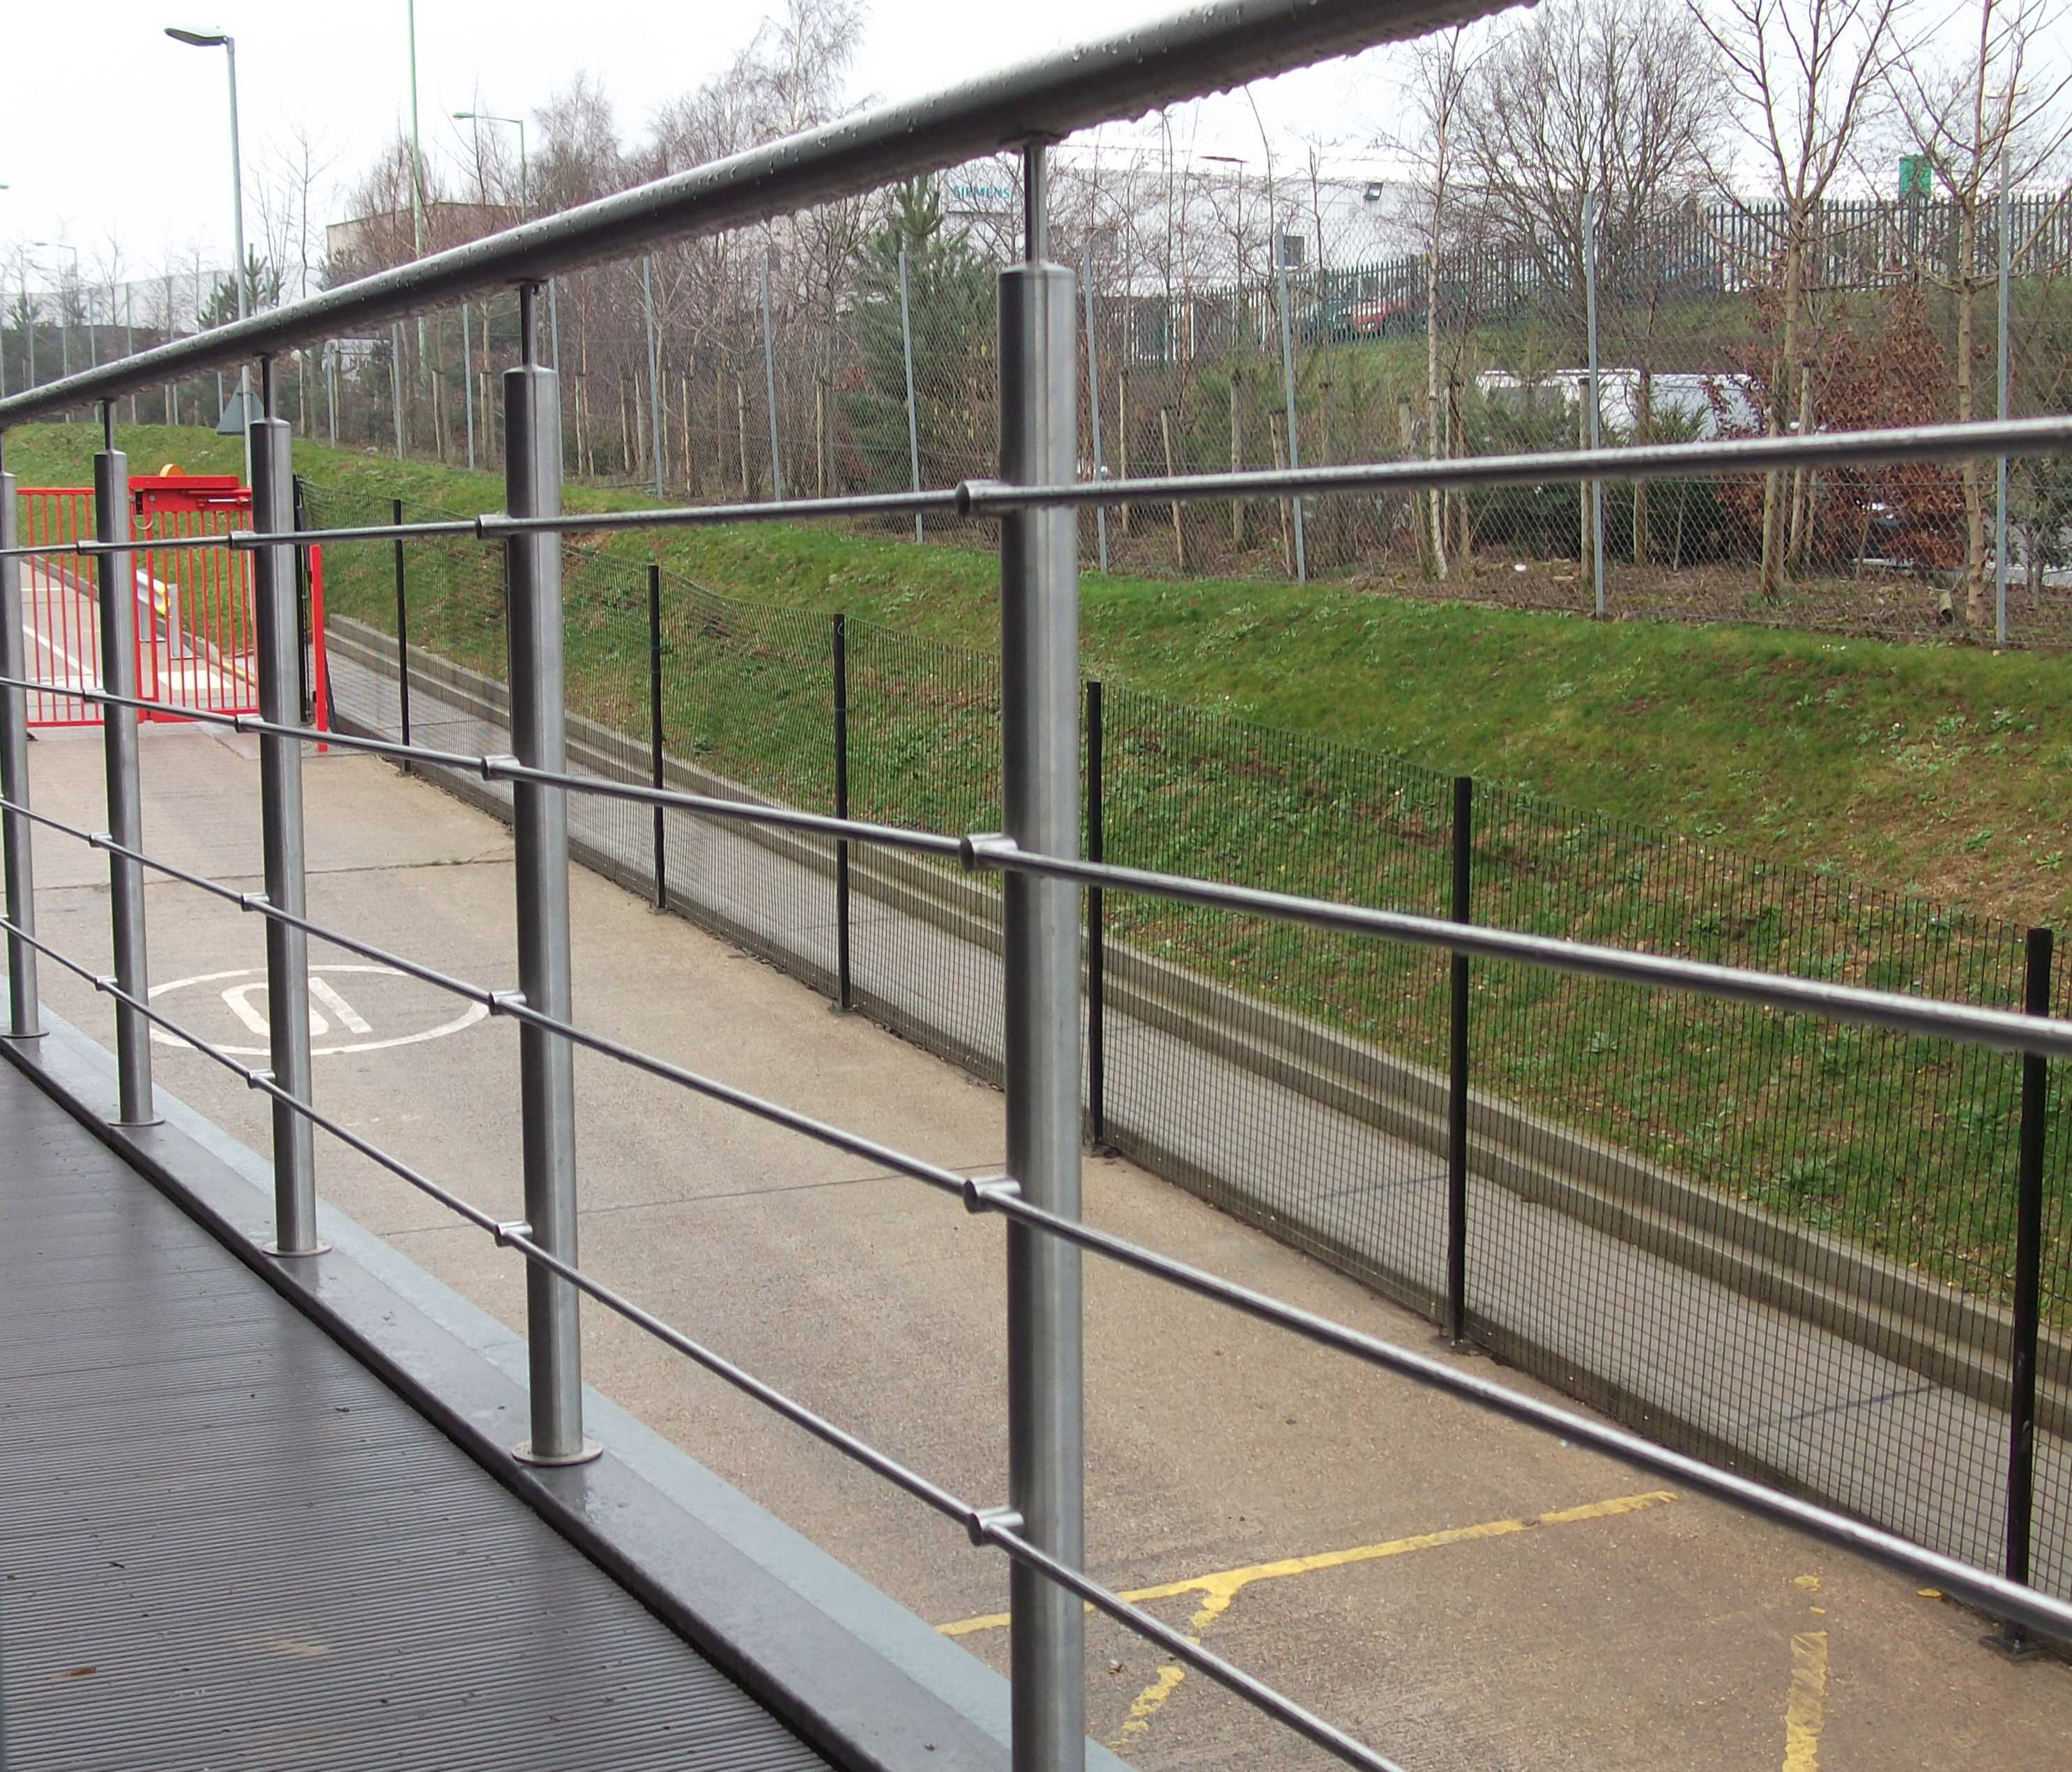 exterior stainless steel handrail and balustrade system